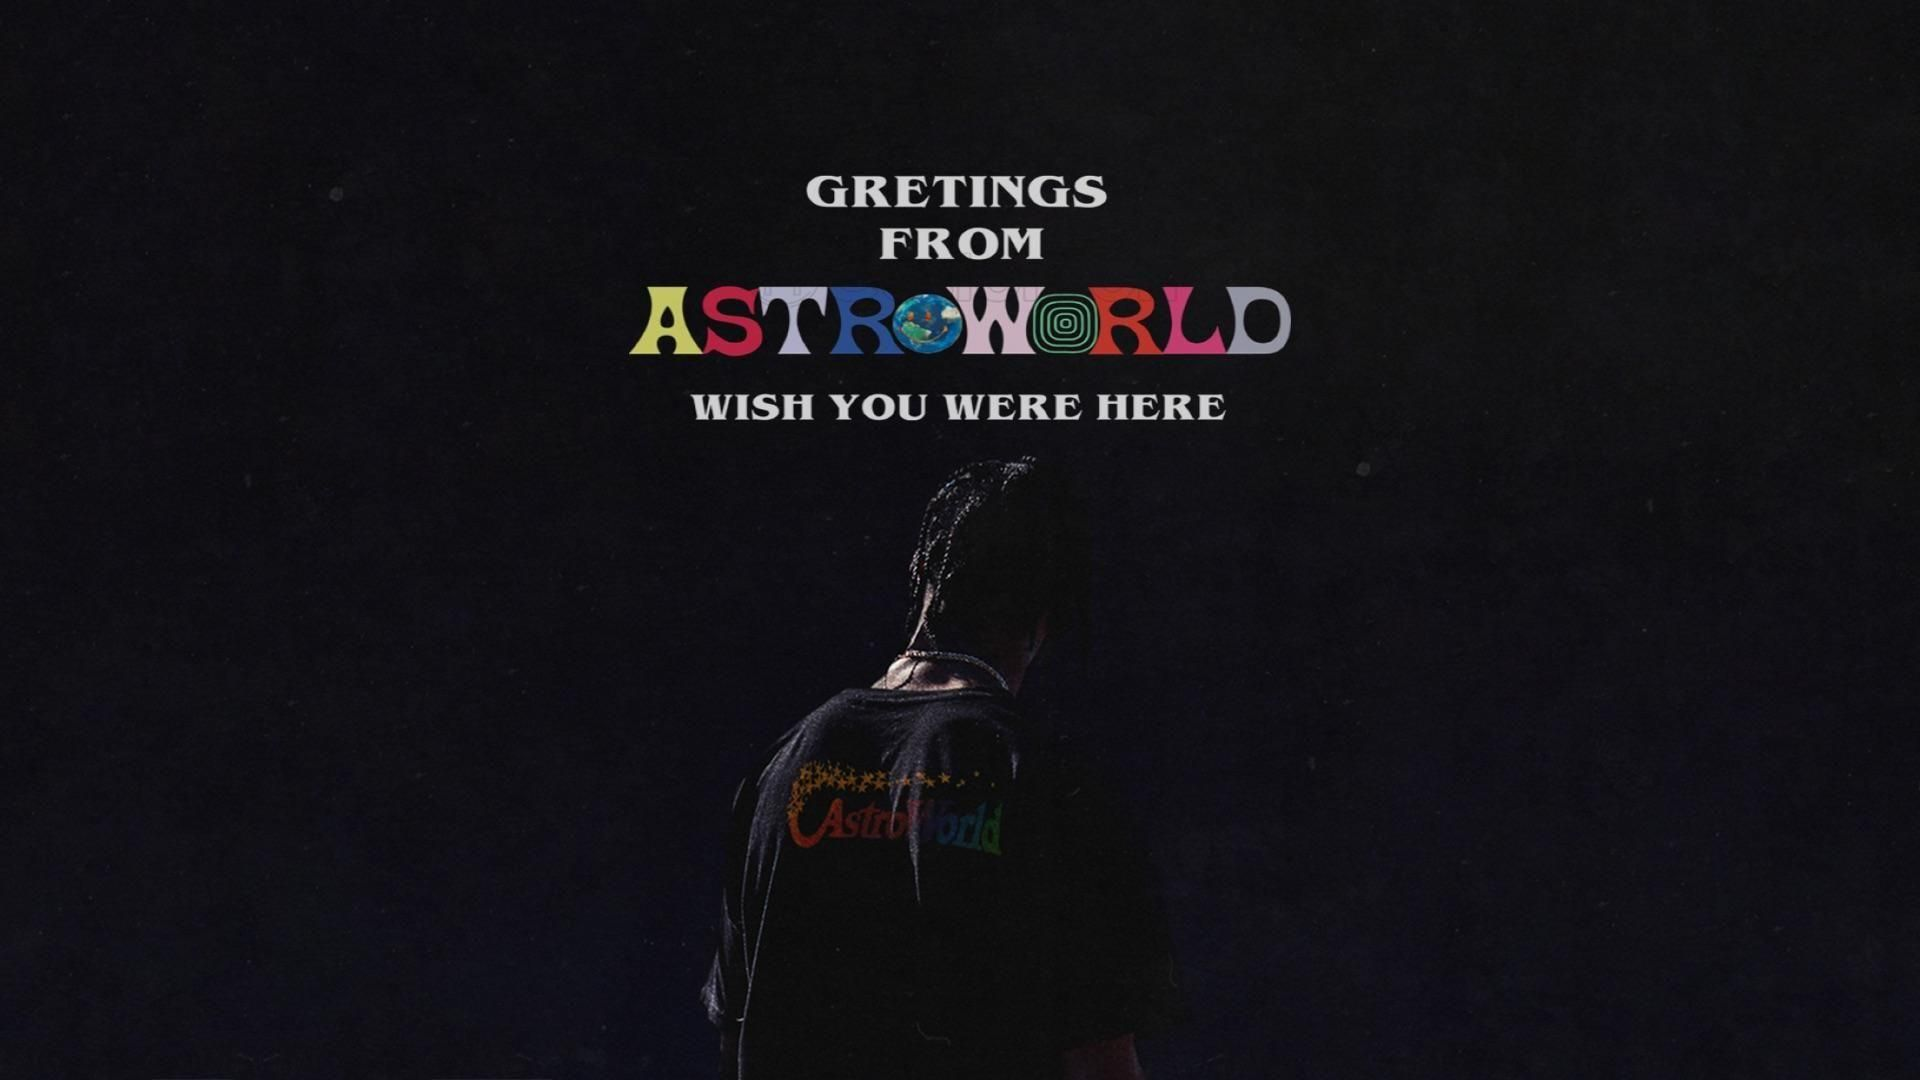 Astroworld Wallpaper For Mobile Phone Tablet Desktop Computer And Other Devices Hd And 4k In 2020 Travis Scott Wallpapers Travis Scott Quotes Travis Scott Astroworld